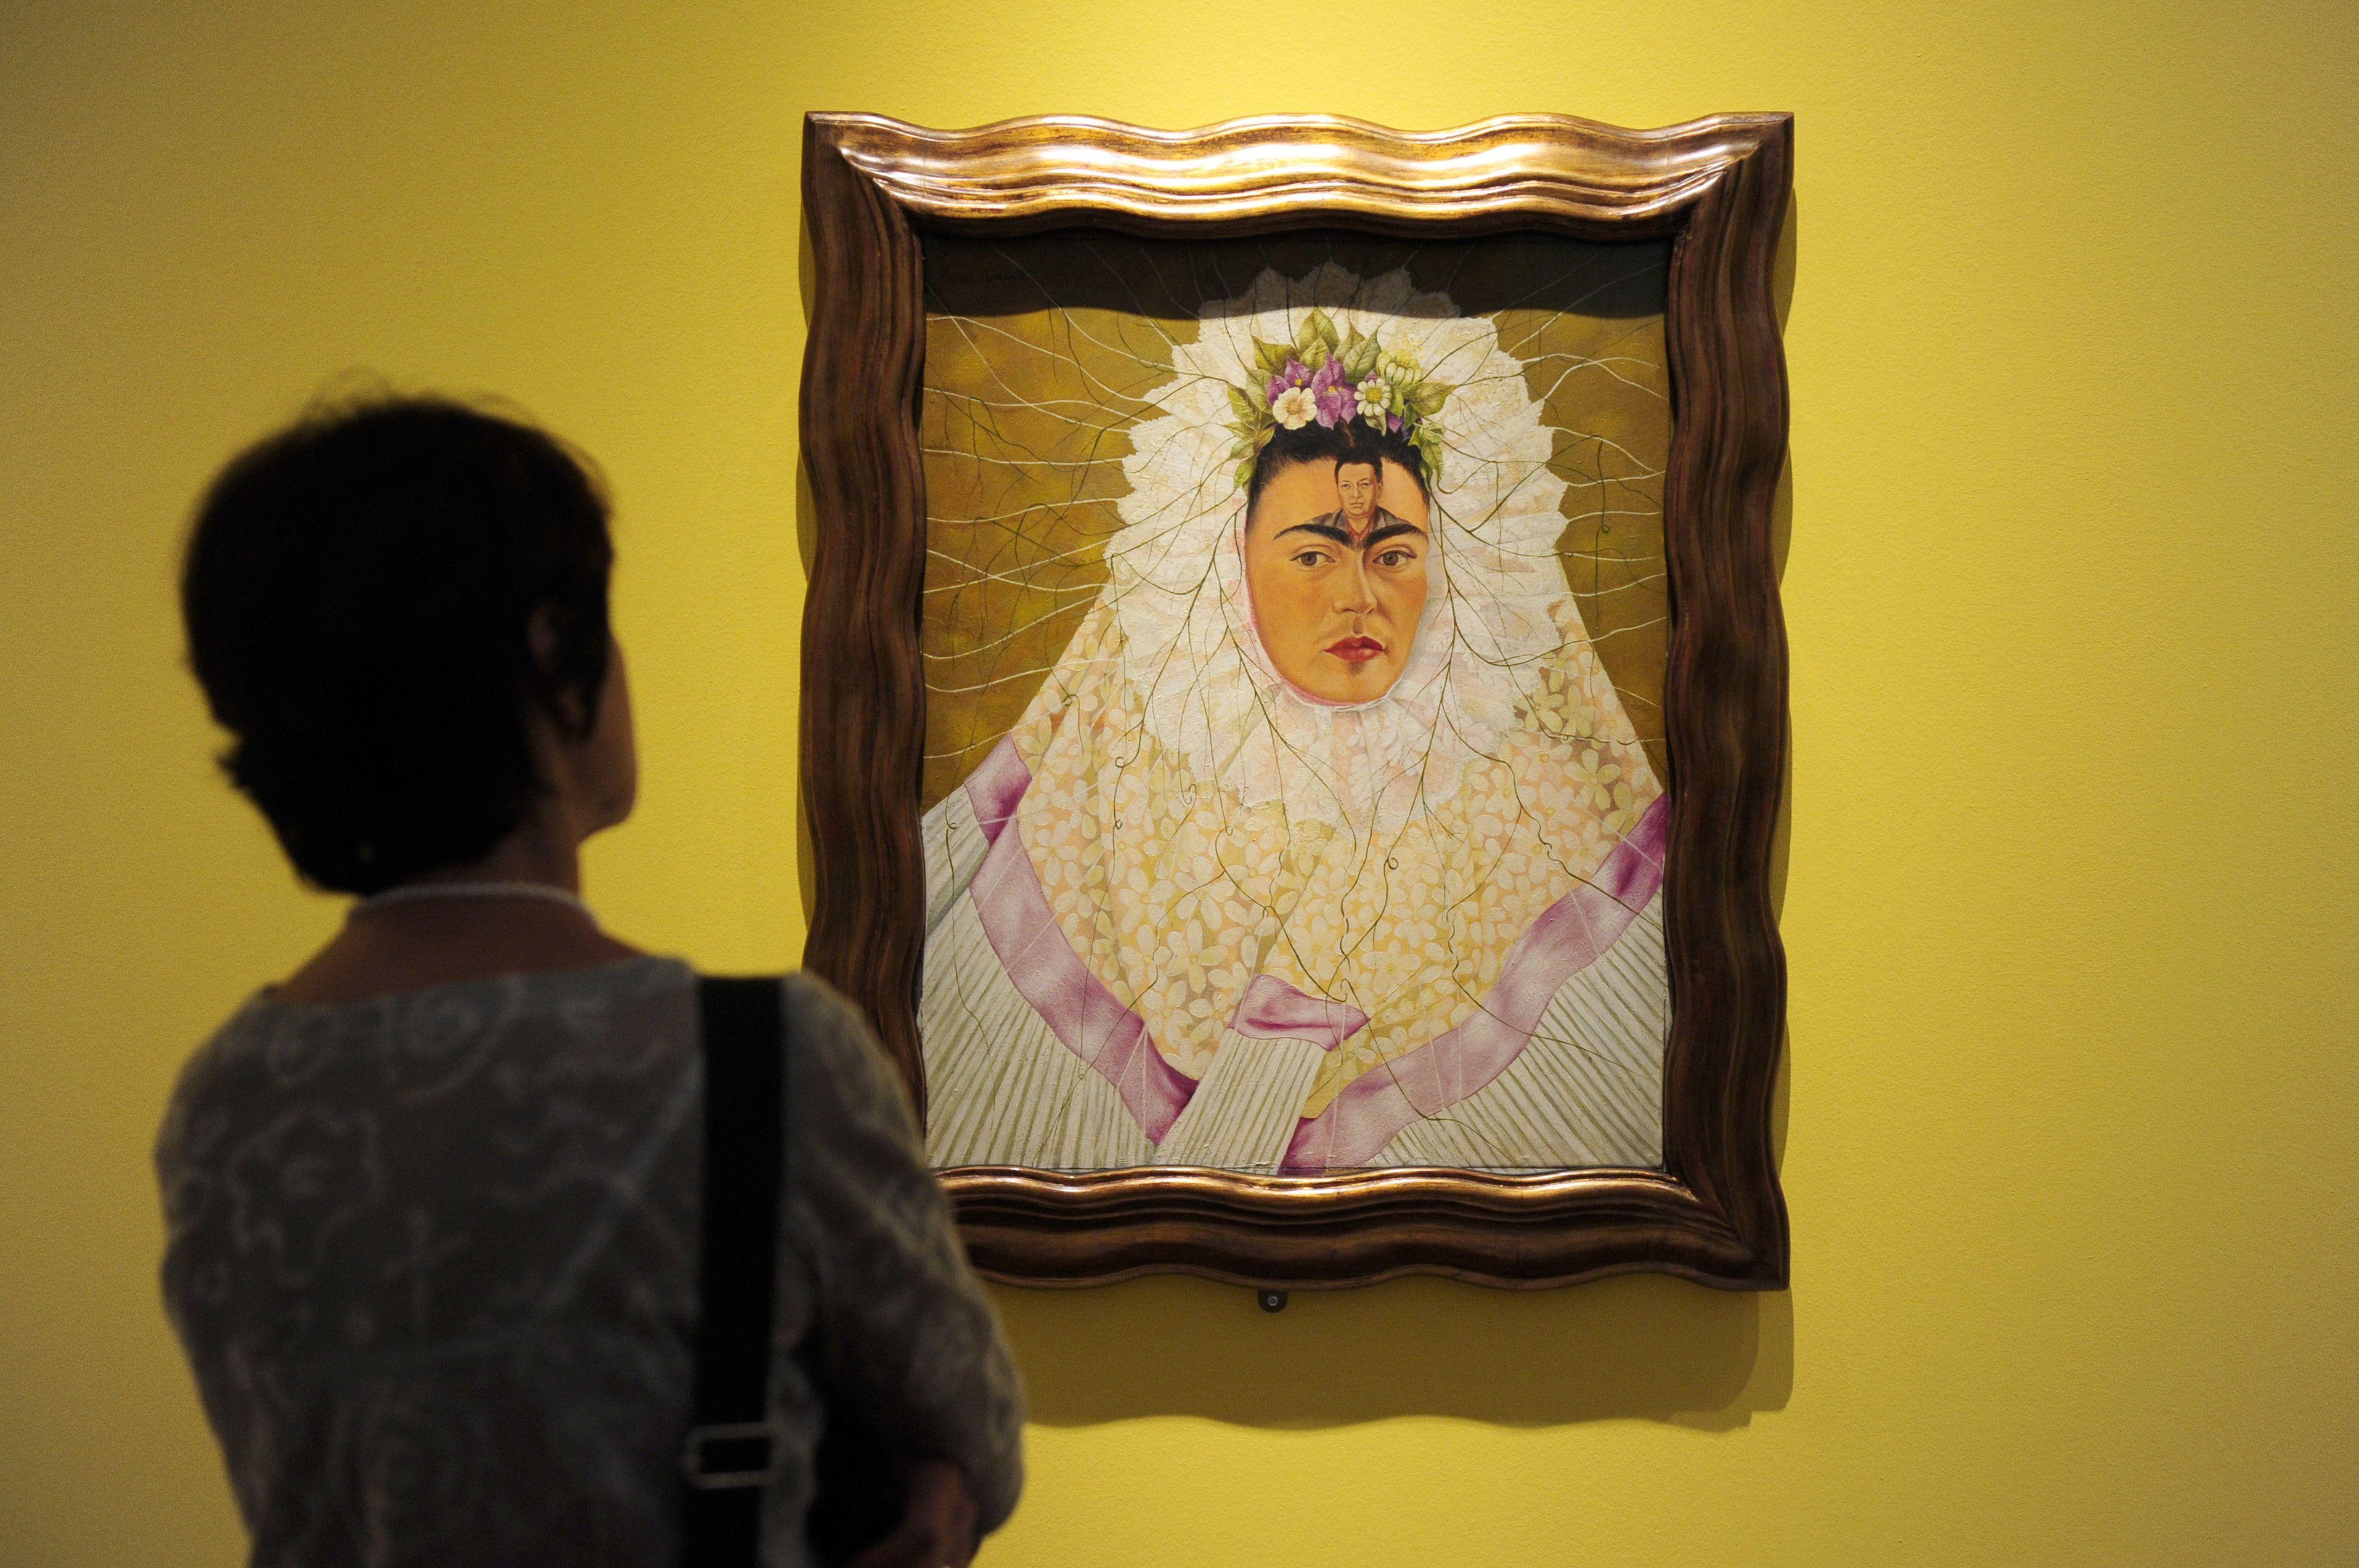 A photographer takes pictures of the painting 'Self-Portrait as Tehuana or Diego on My Mind' by Mexican artist Frida Kahlo during a press preview on April 29, 2010 at the Martin-Gropius-Bau museum in Berlin. From April 30 to August 9, 2010, the museum presents a retrospective on the important painter known for her self-portraits often depicting her own pain.      AFP PHOTO    JOHN MACDOUGALL (Photo credit should read JOHN MACDOUGALL/AFP/Getty Images)